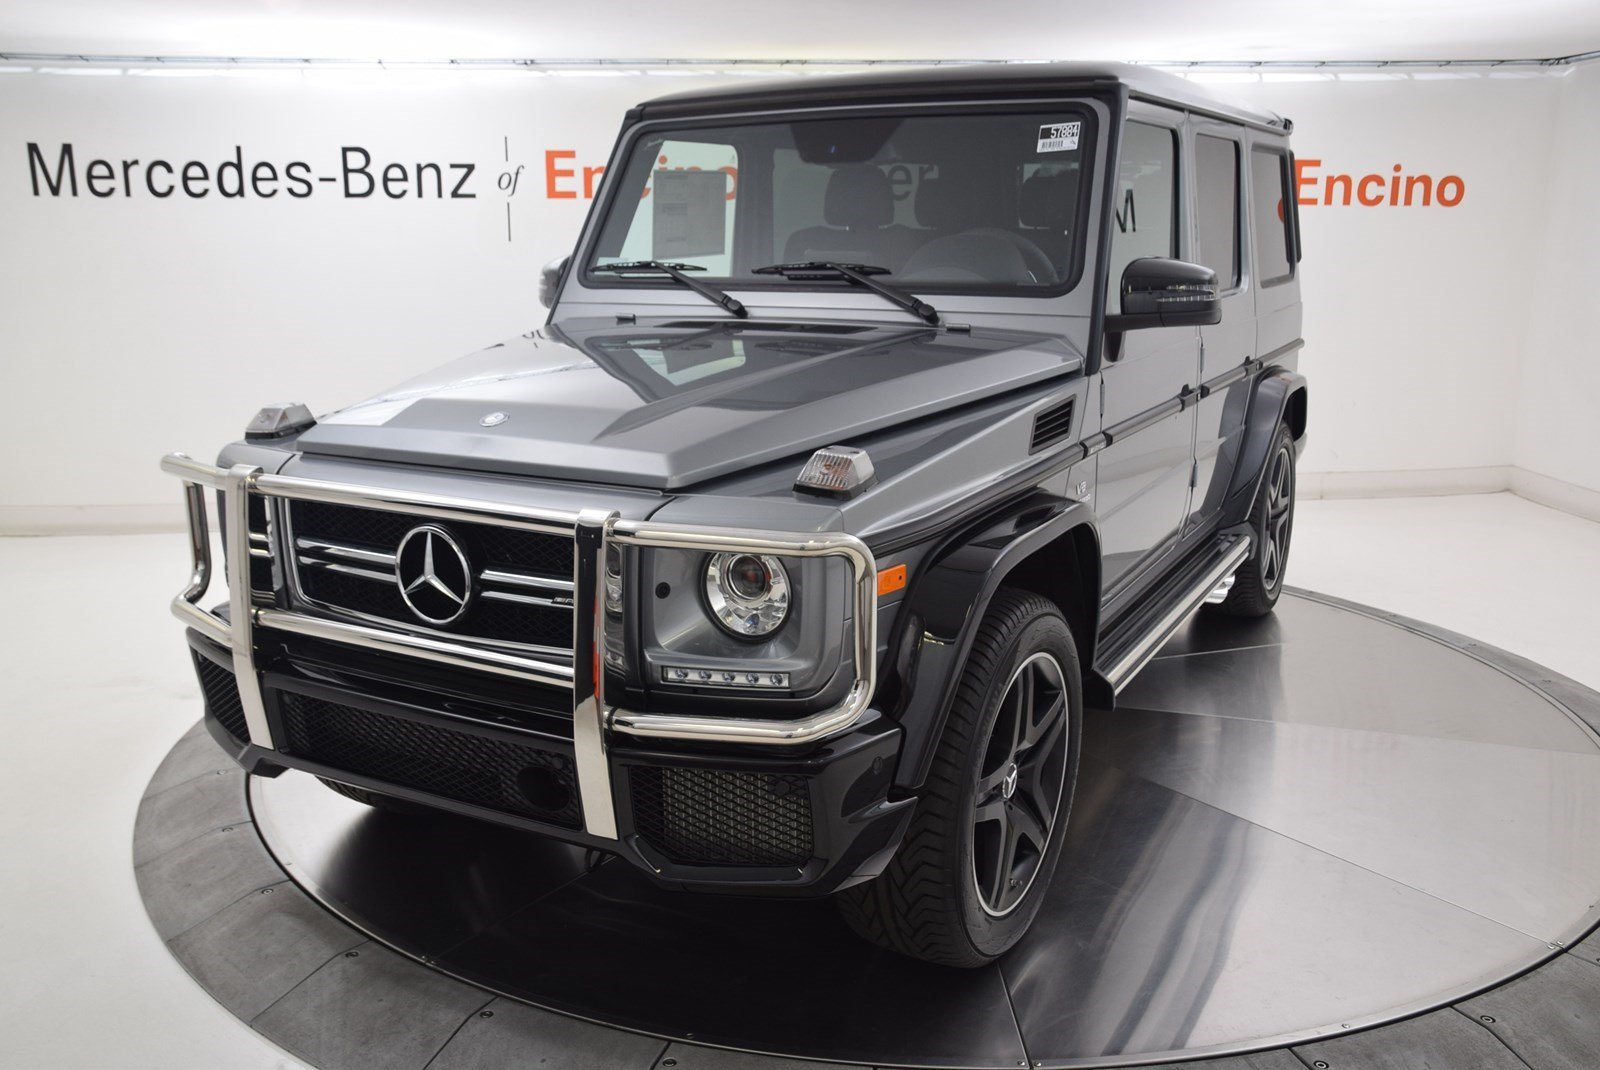 New 2017 mercedes benz g class amg g 63 suv suv in encino for 2017 mercedes benz g class msrp